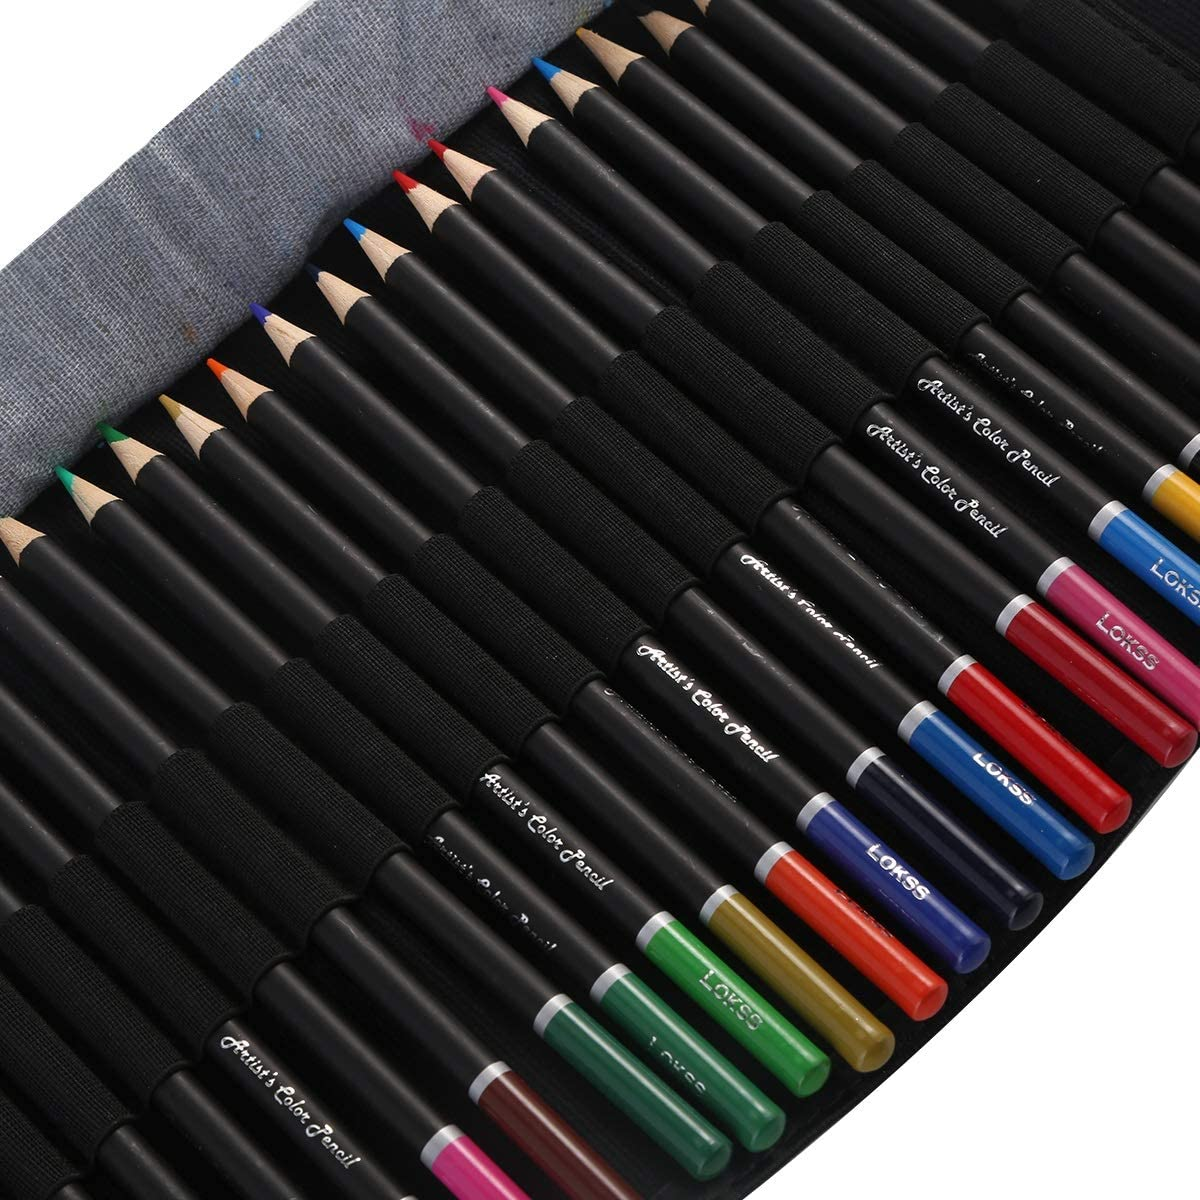 DEALPEAK 36 Color Pencils Colored Pencils Set with Case Sharpener and Nylon Wrapper Coloring Supplies for Art Drawing